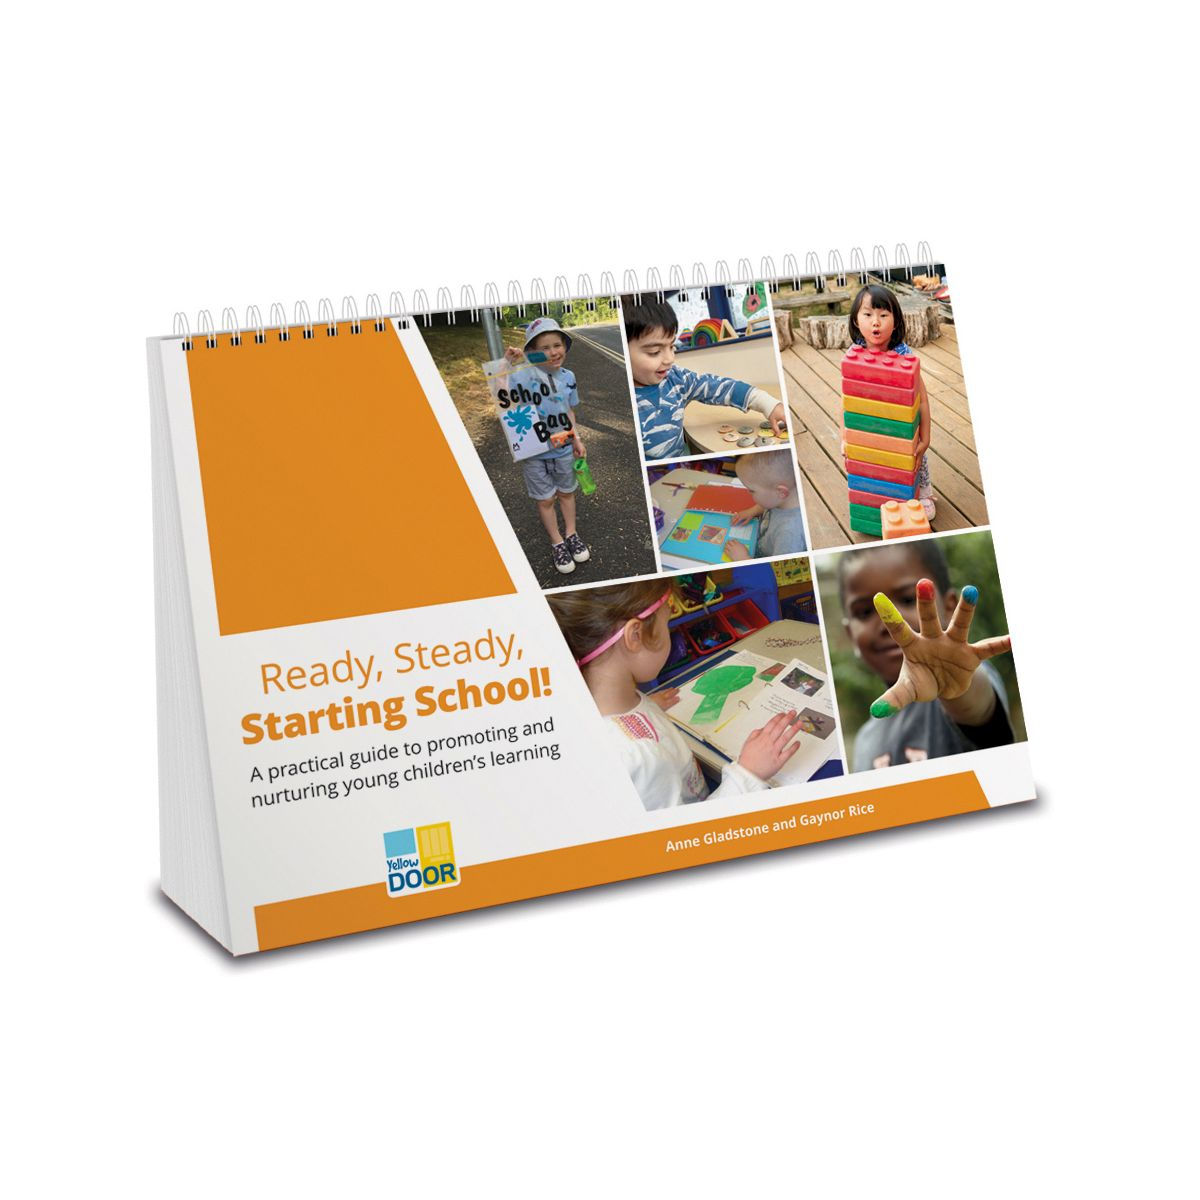 Spiral-bound handbook with practical ideas to smooth transition from Reception to Key Stage 1